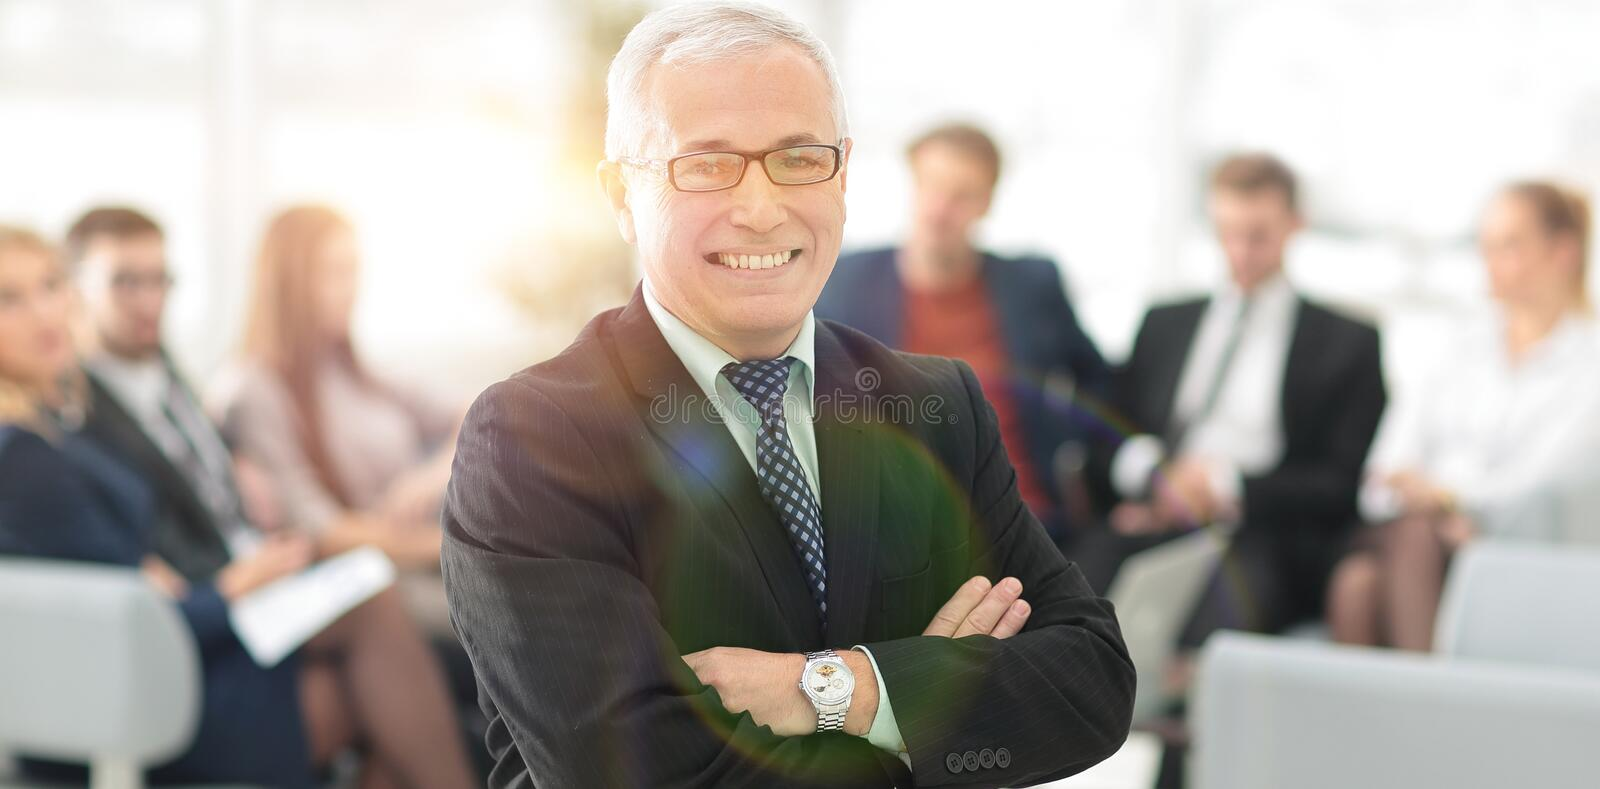 Smiling senior boss in the background of the office. Photo with copy space royalty free stock images